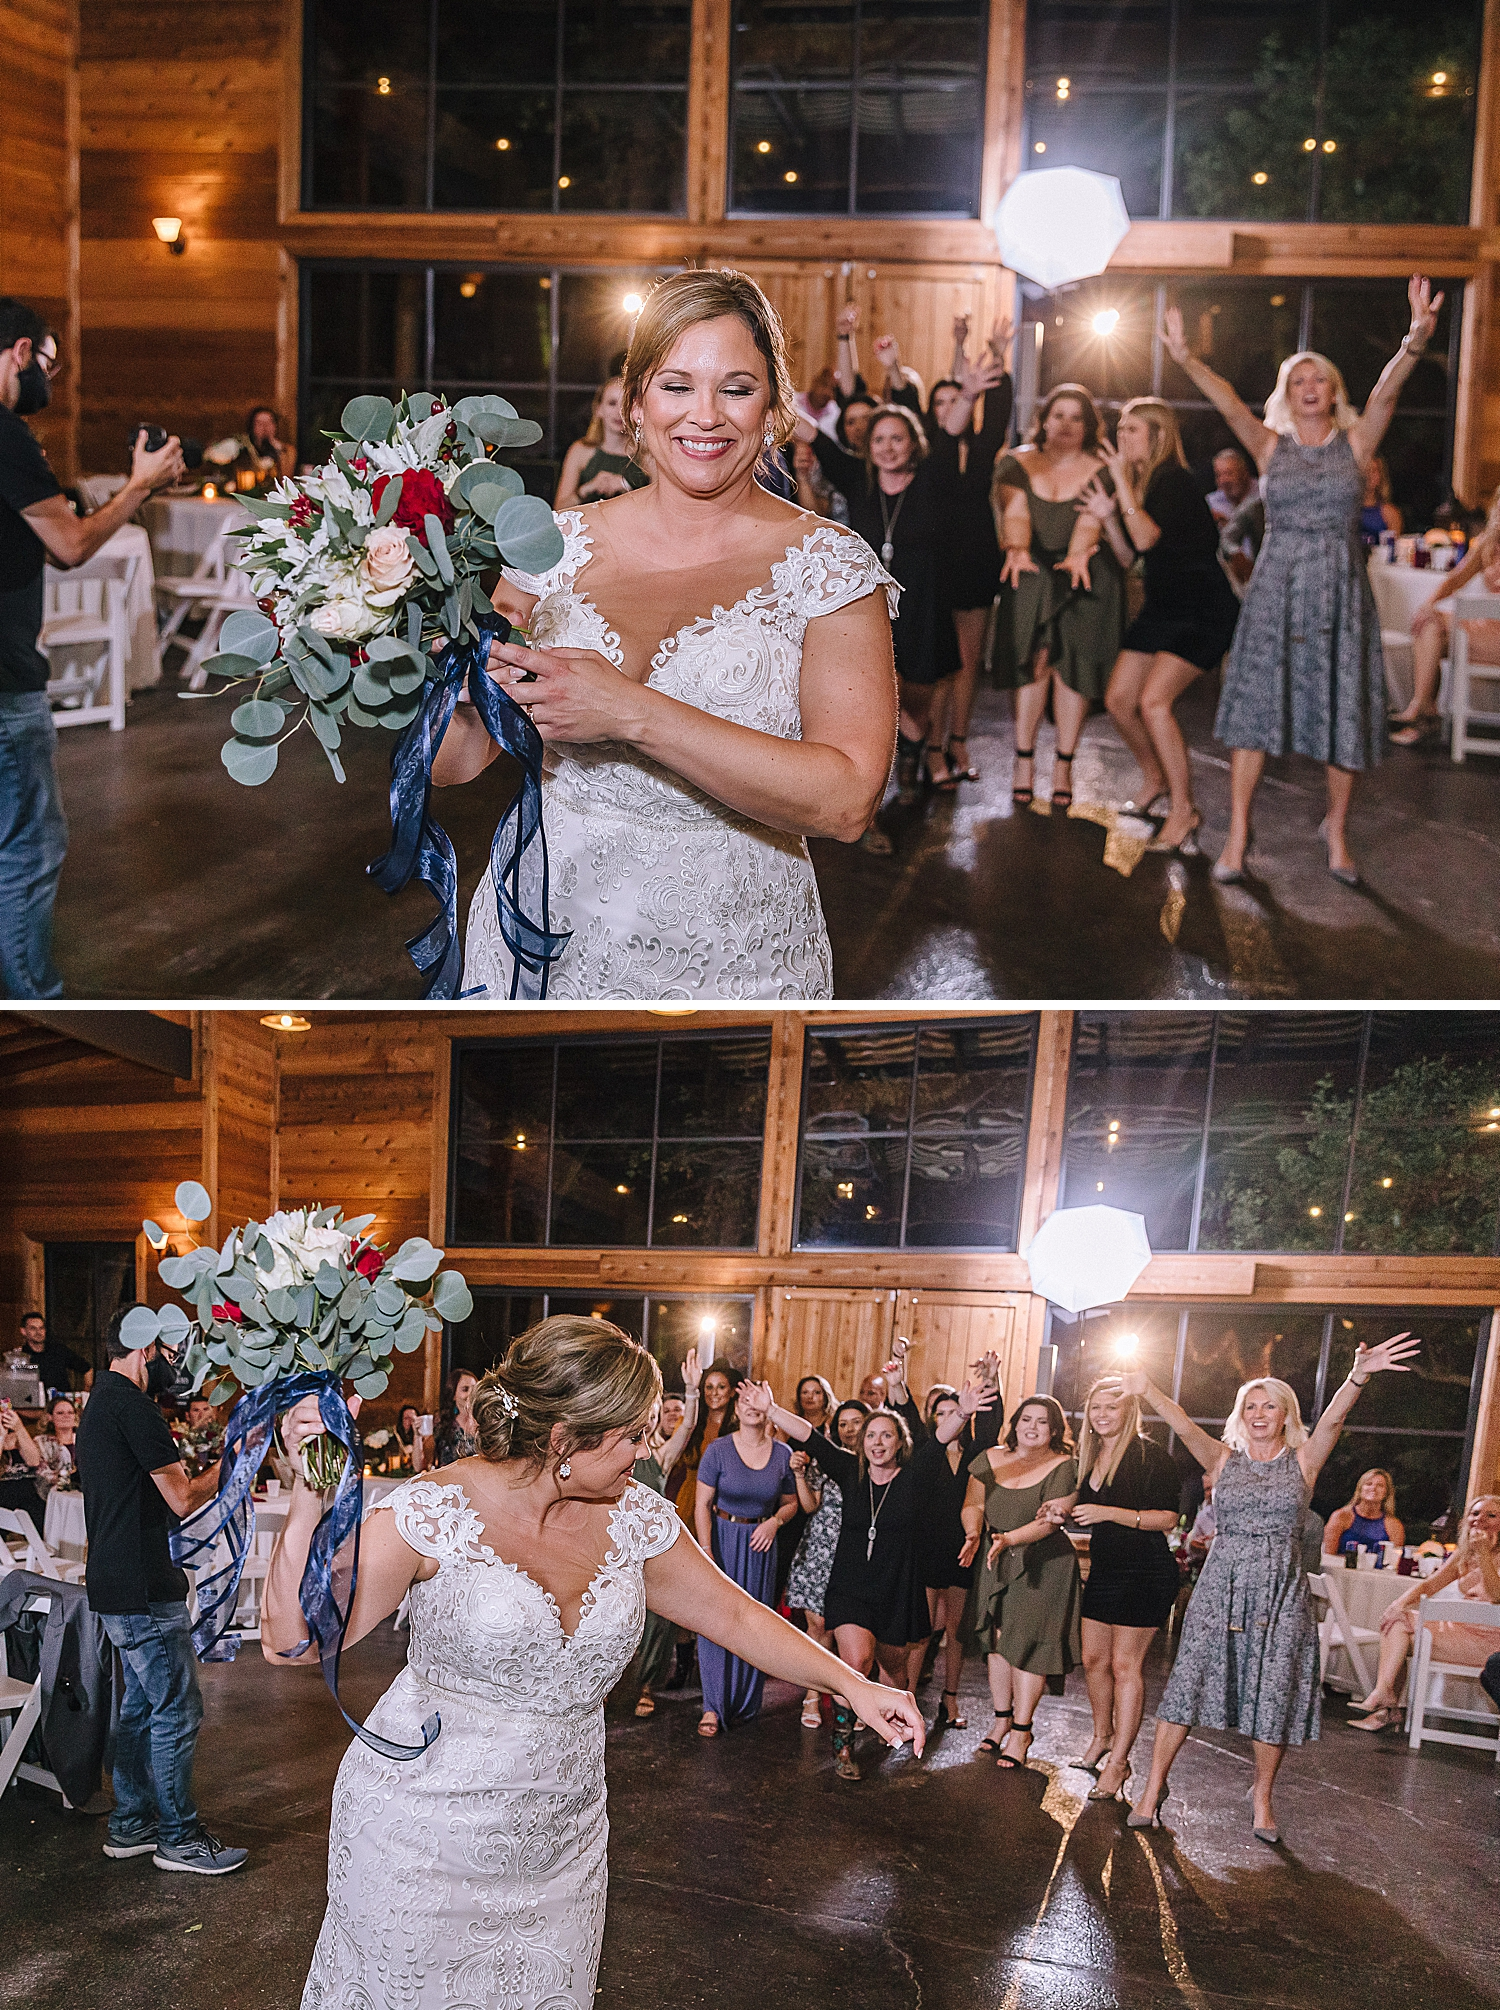 Geronimo-Oaks-Wedding-Venue-Seguin-Texas-Elegant-Navy-Burgundy-Wedding-Carly-Barton-Photography_0082.jpg